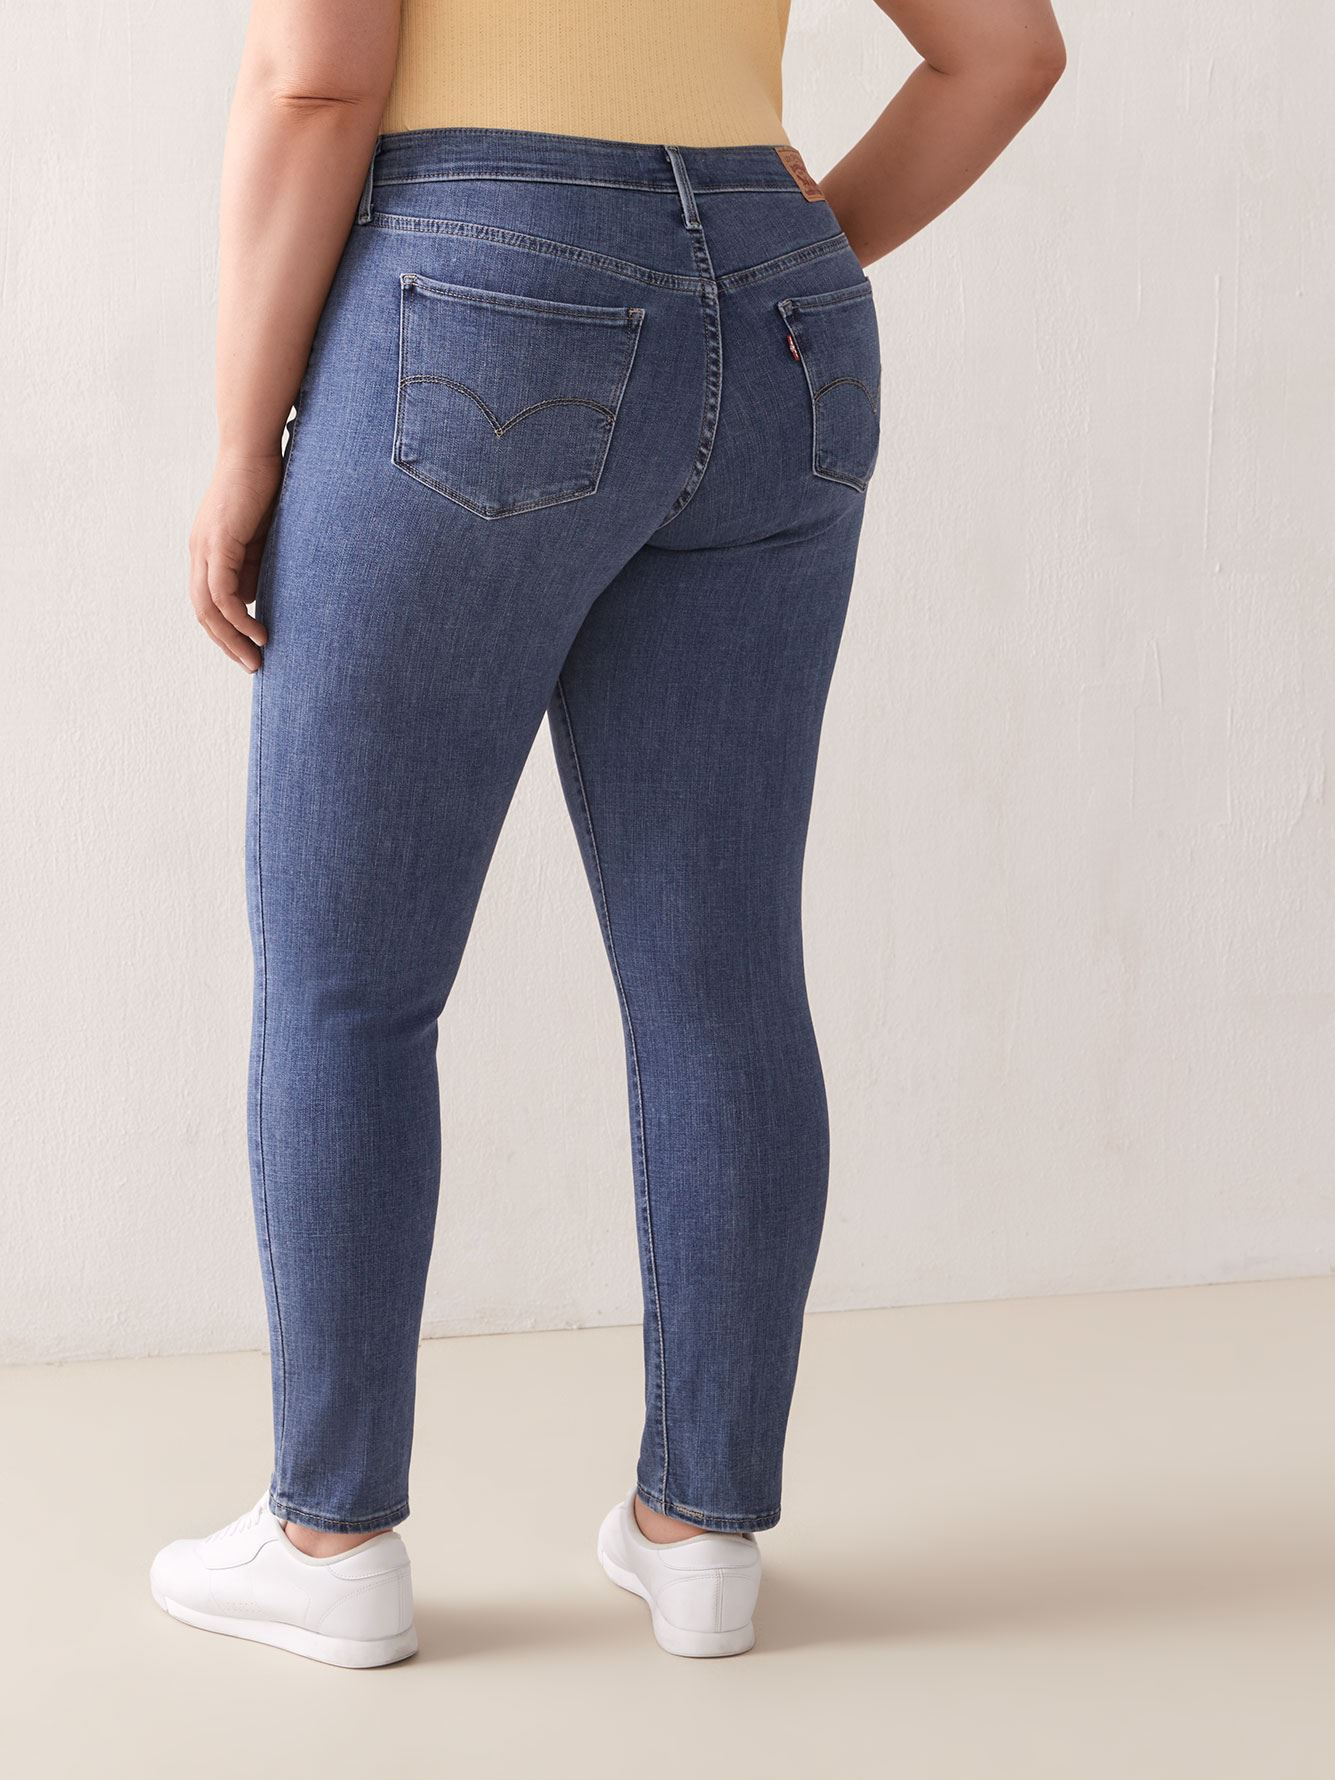 Stretchy 311 Shaping Skinny Ankle Length Jean - Levi's Premium